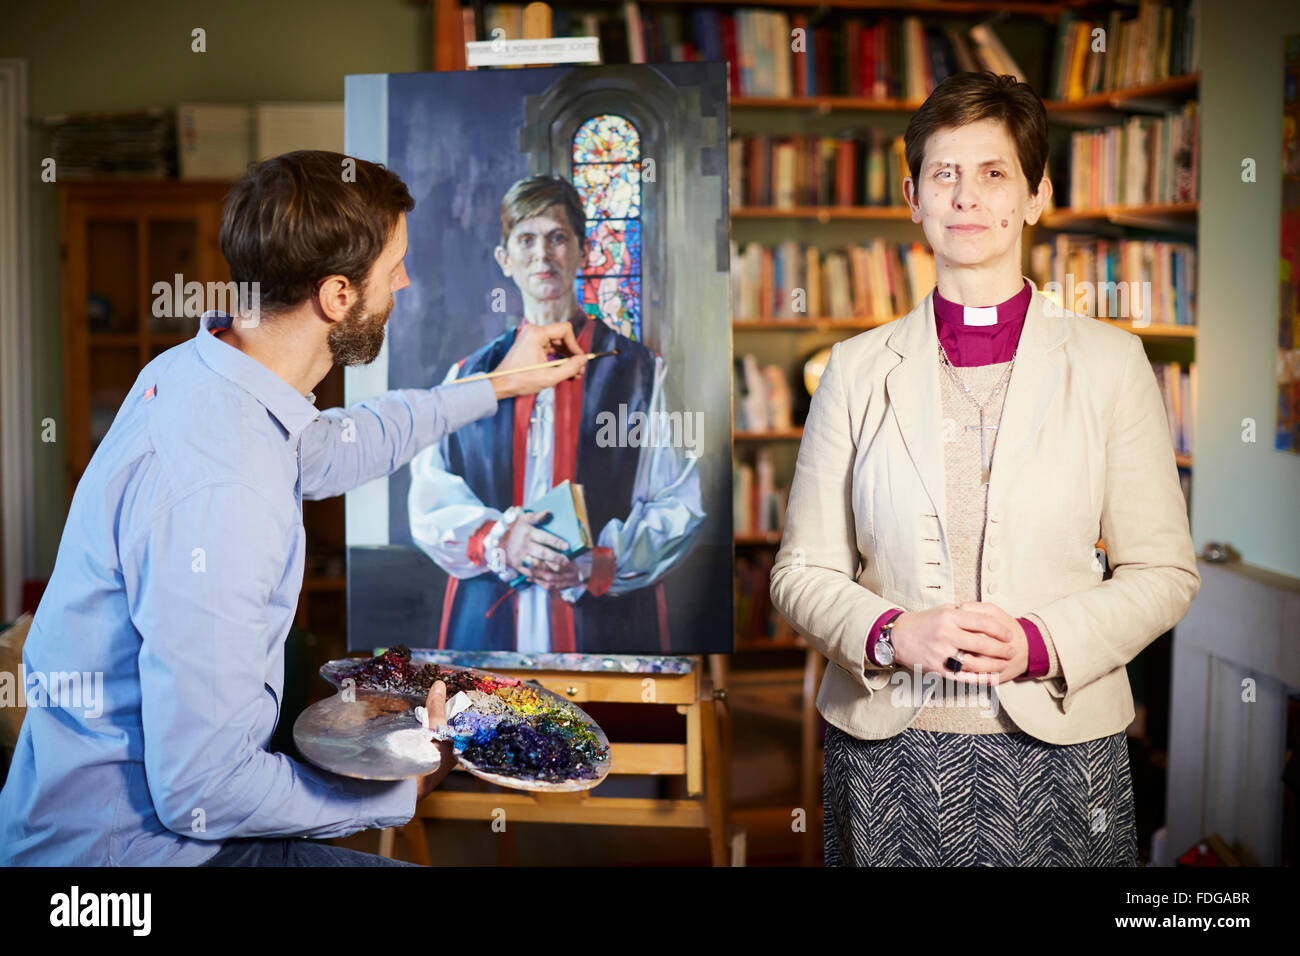 Libby Lane,  Church of England's Bishop of Stockport artist artwork creative art painted portrait by artist Tom - Stock Image